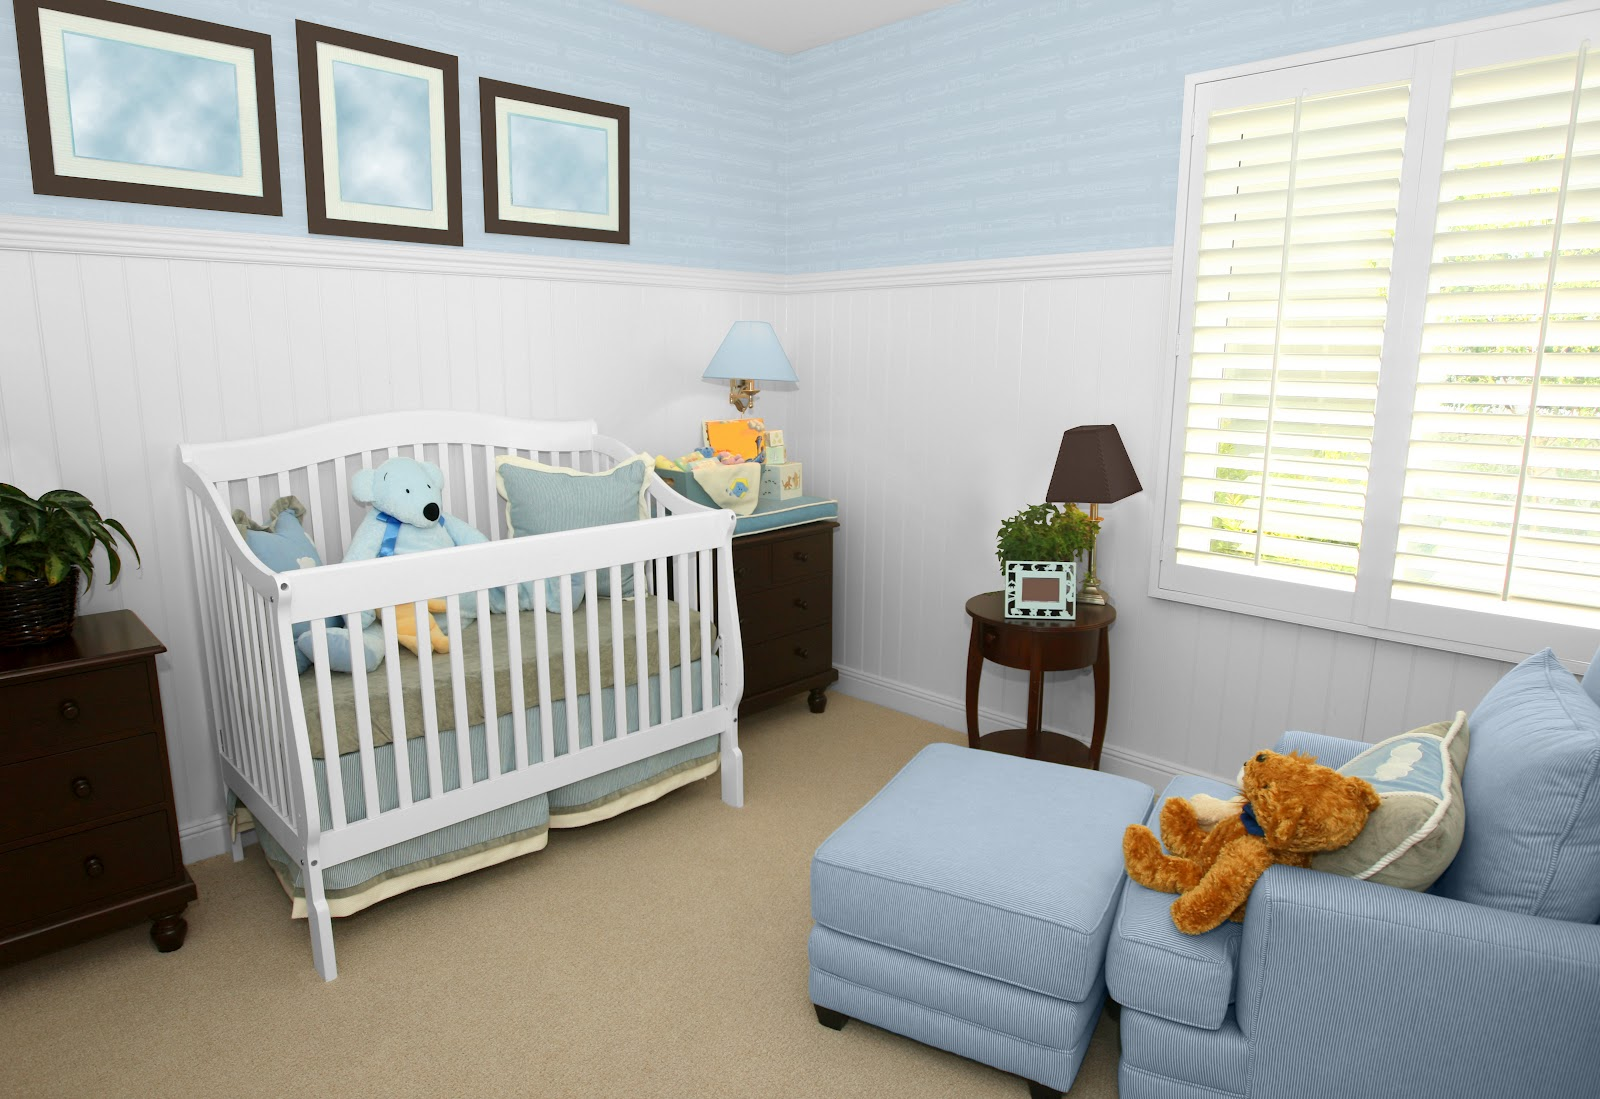 top 10 baby nursery room colors and decorating ideas. Black Bedroom Furniture Sets. Home Design Ideas